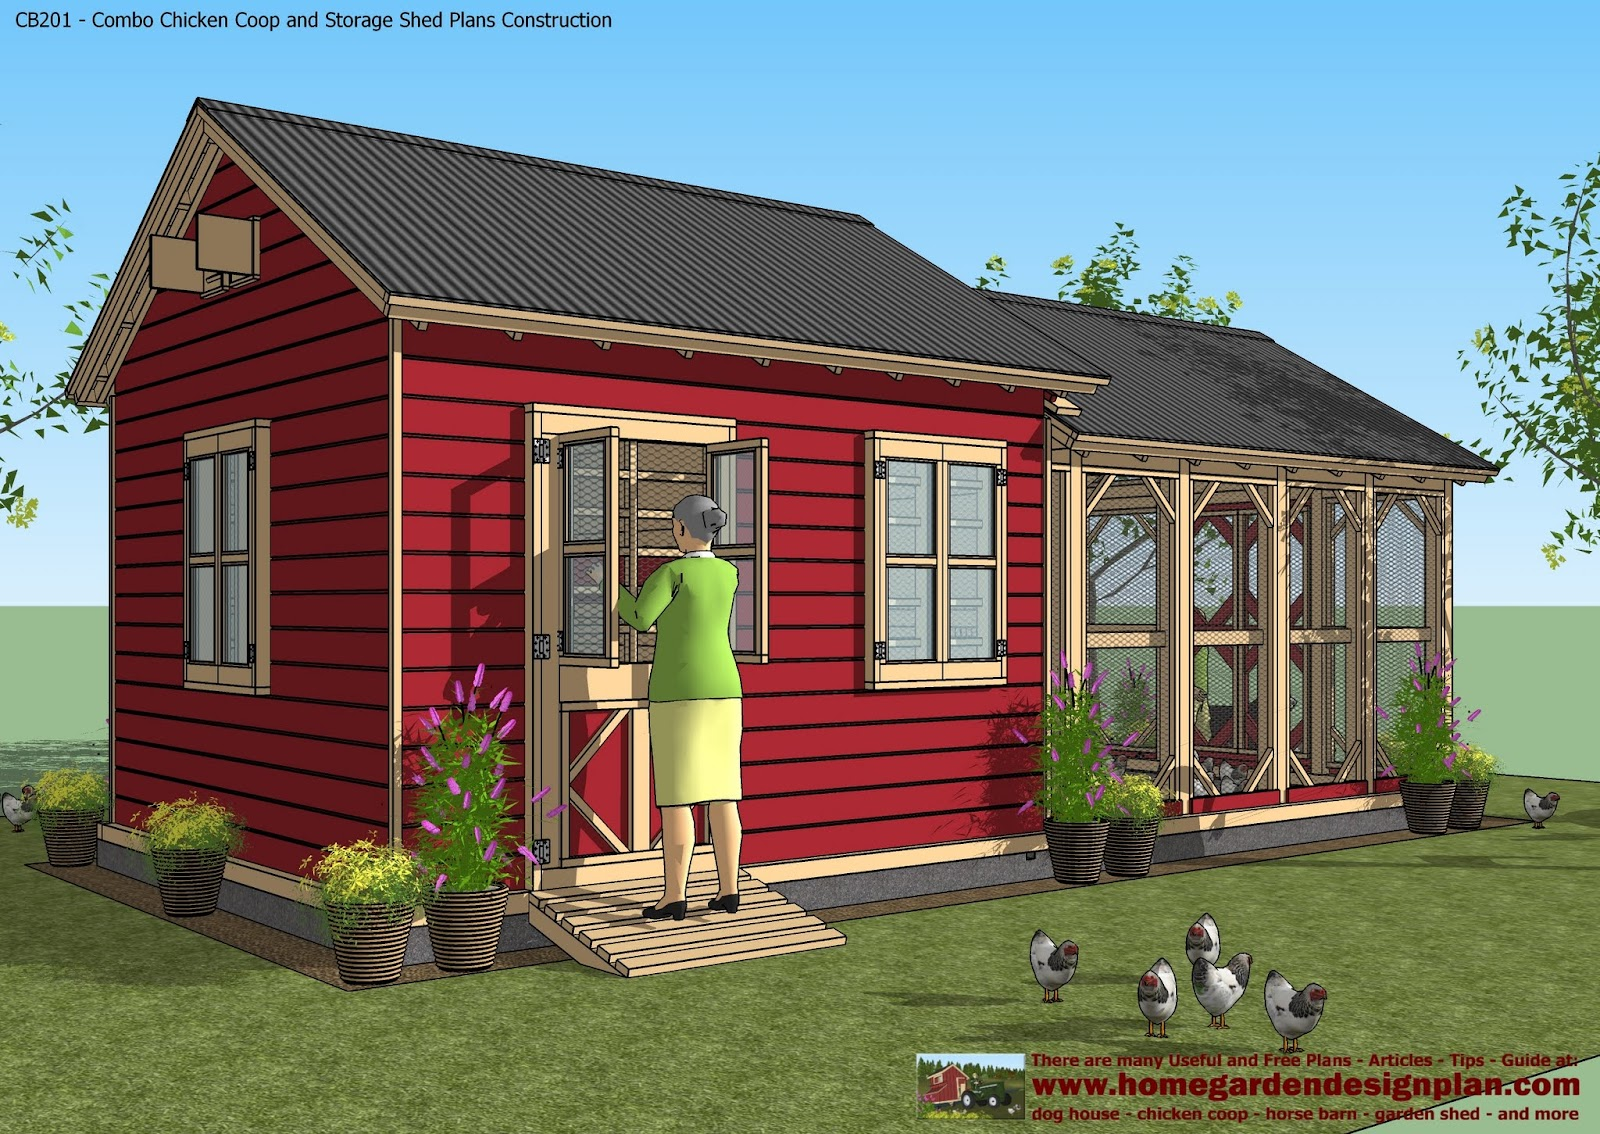 For chick coop cb201 combo plans chicken coop plans Barn plans and outbuildings